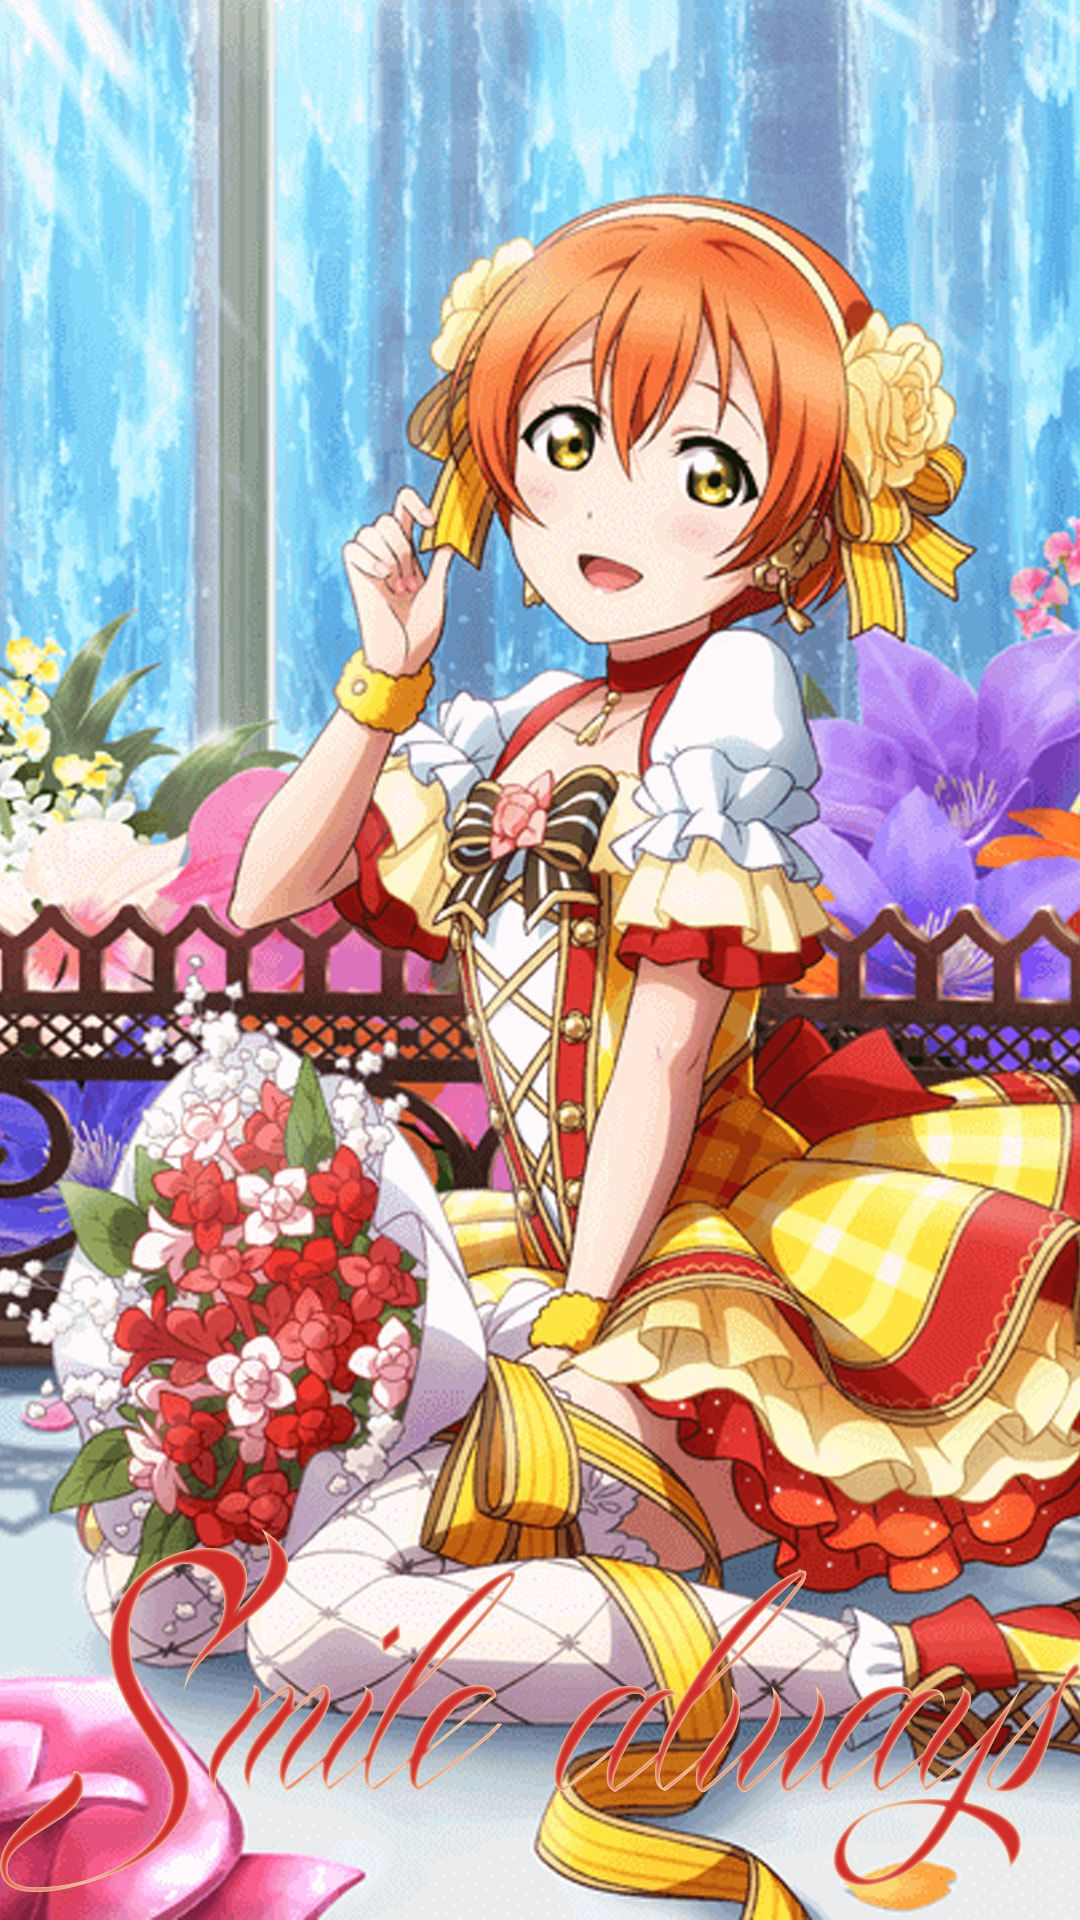 A page for Love Live School Idol Project Muse wallpapers in 2020 1080x1920